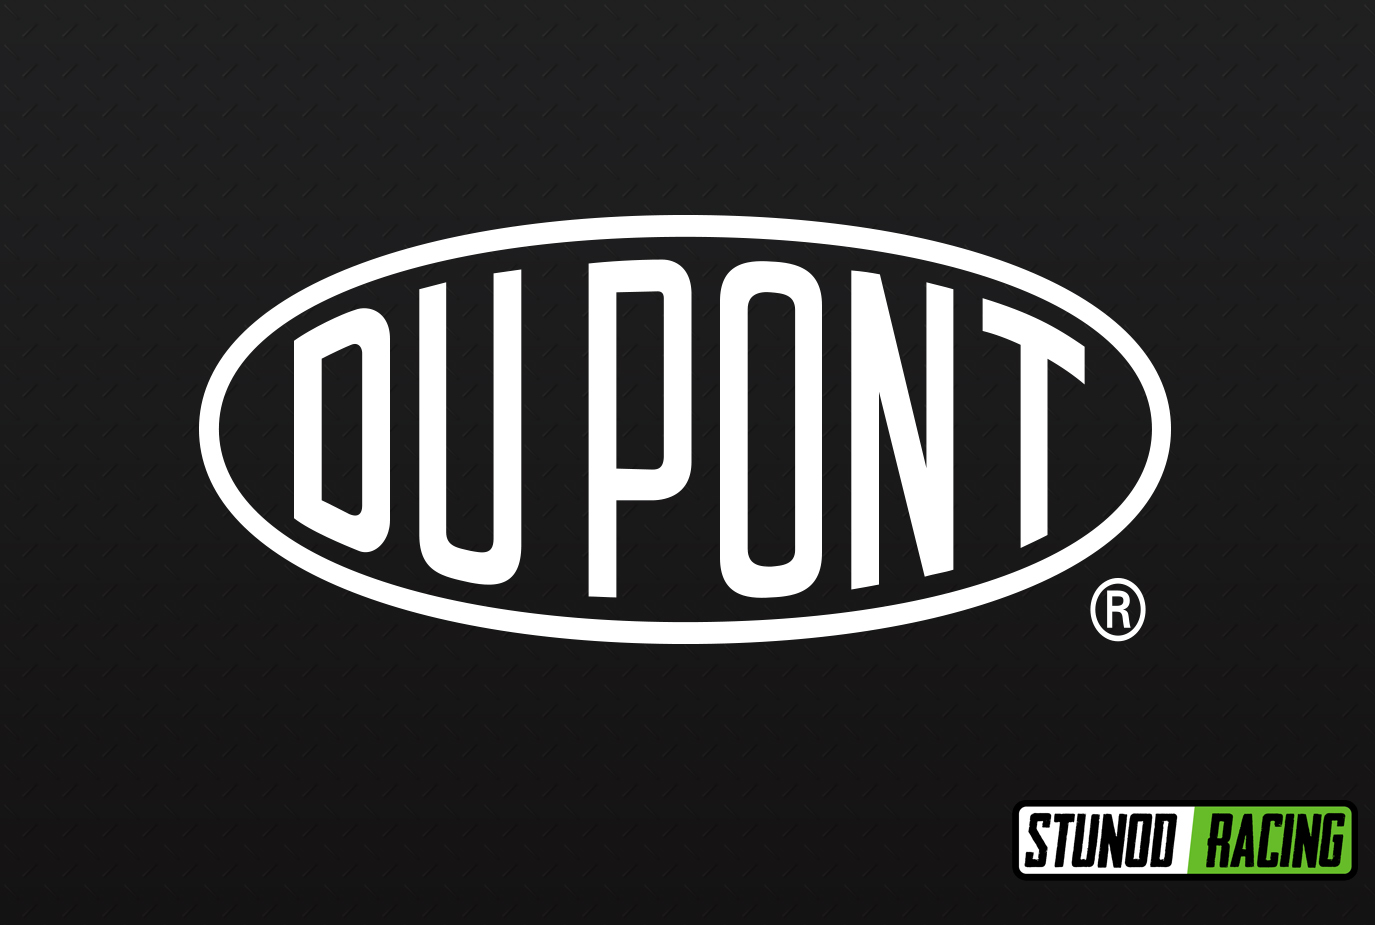 StunodRacing-DuPont-Logo2.jpg